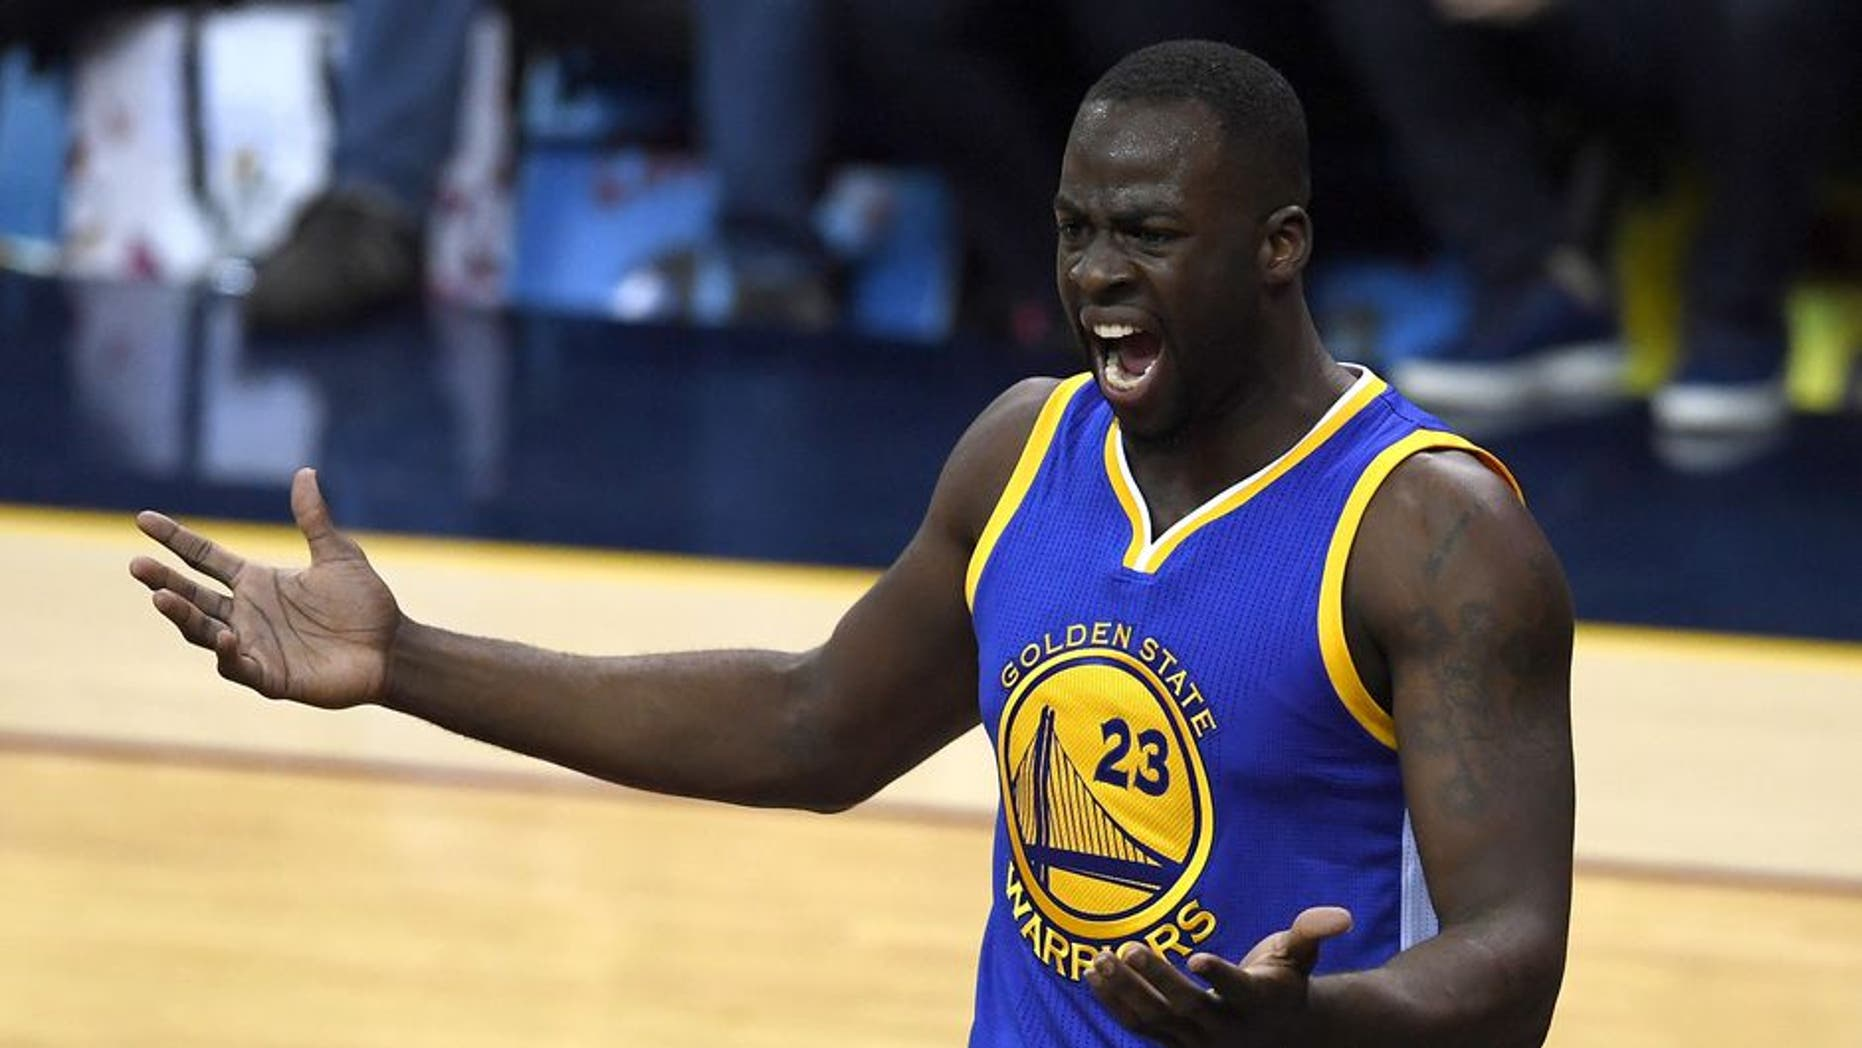 CLEVELAND, OH - JUNE 16: Draymond Green #23 of the Golden State Warriors reacts after a play in the second half against the Cleveland Cavaliers in Game 6 of the 2016 NBA Finals at Quicken Loans Arena on June 16, 2016 in Cleveland, Ohio. NOTE TO USER: User expressly acknowledges and agrees that, by downloading and or using this photograph, User is consenting to the terms and conditions of the Getty Images License Agreement. (Photo by Jason Miller/Getty Images)